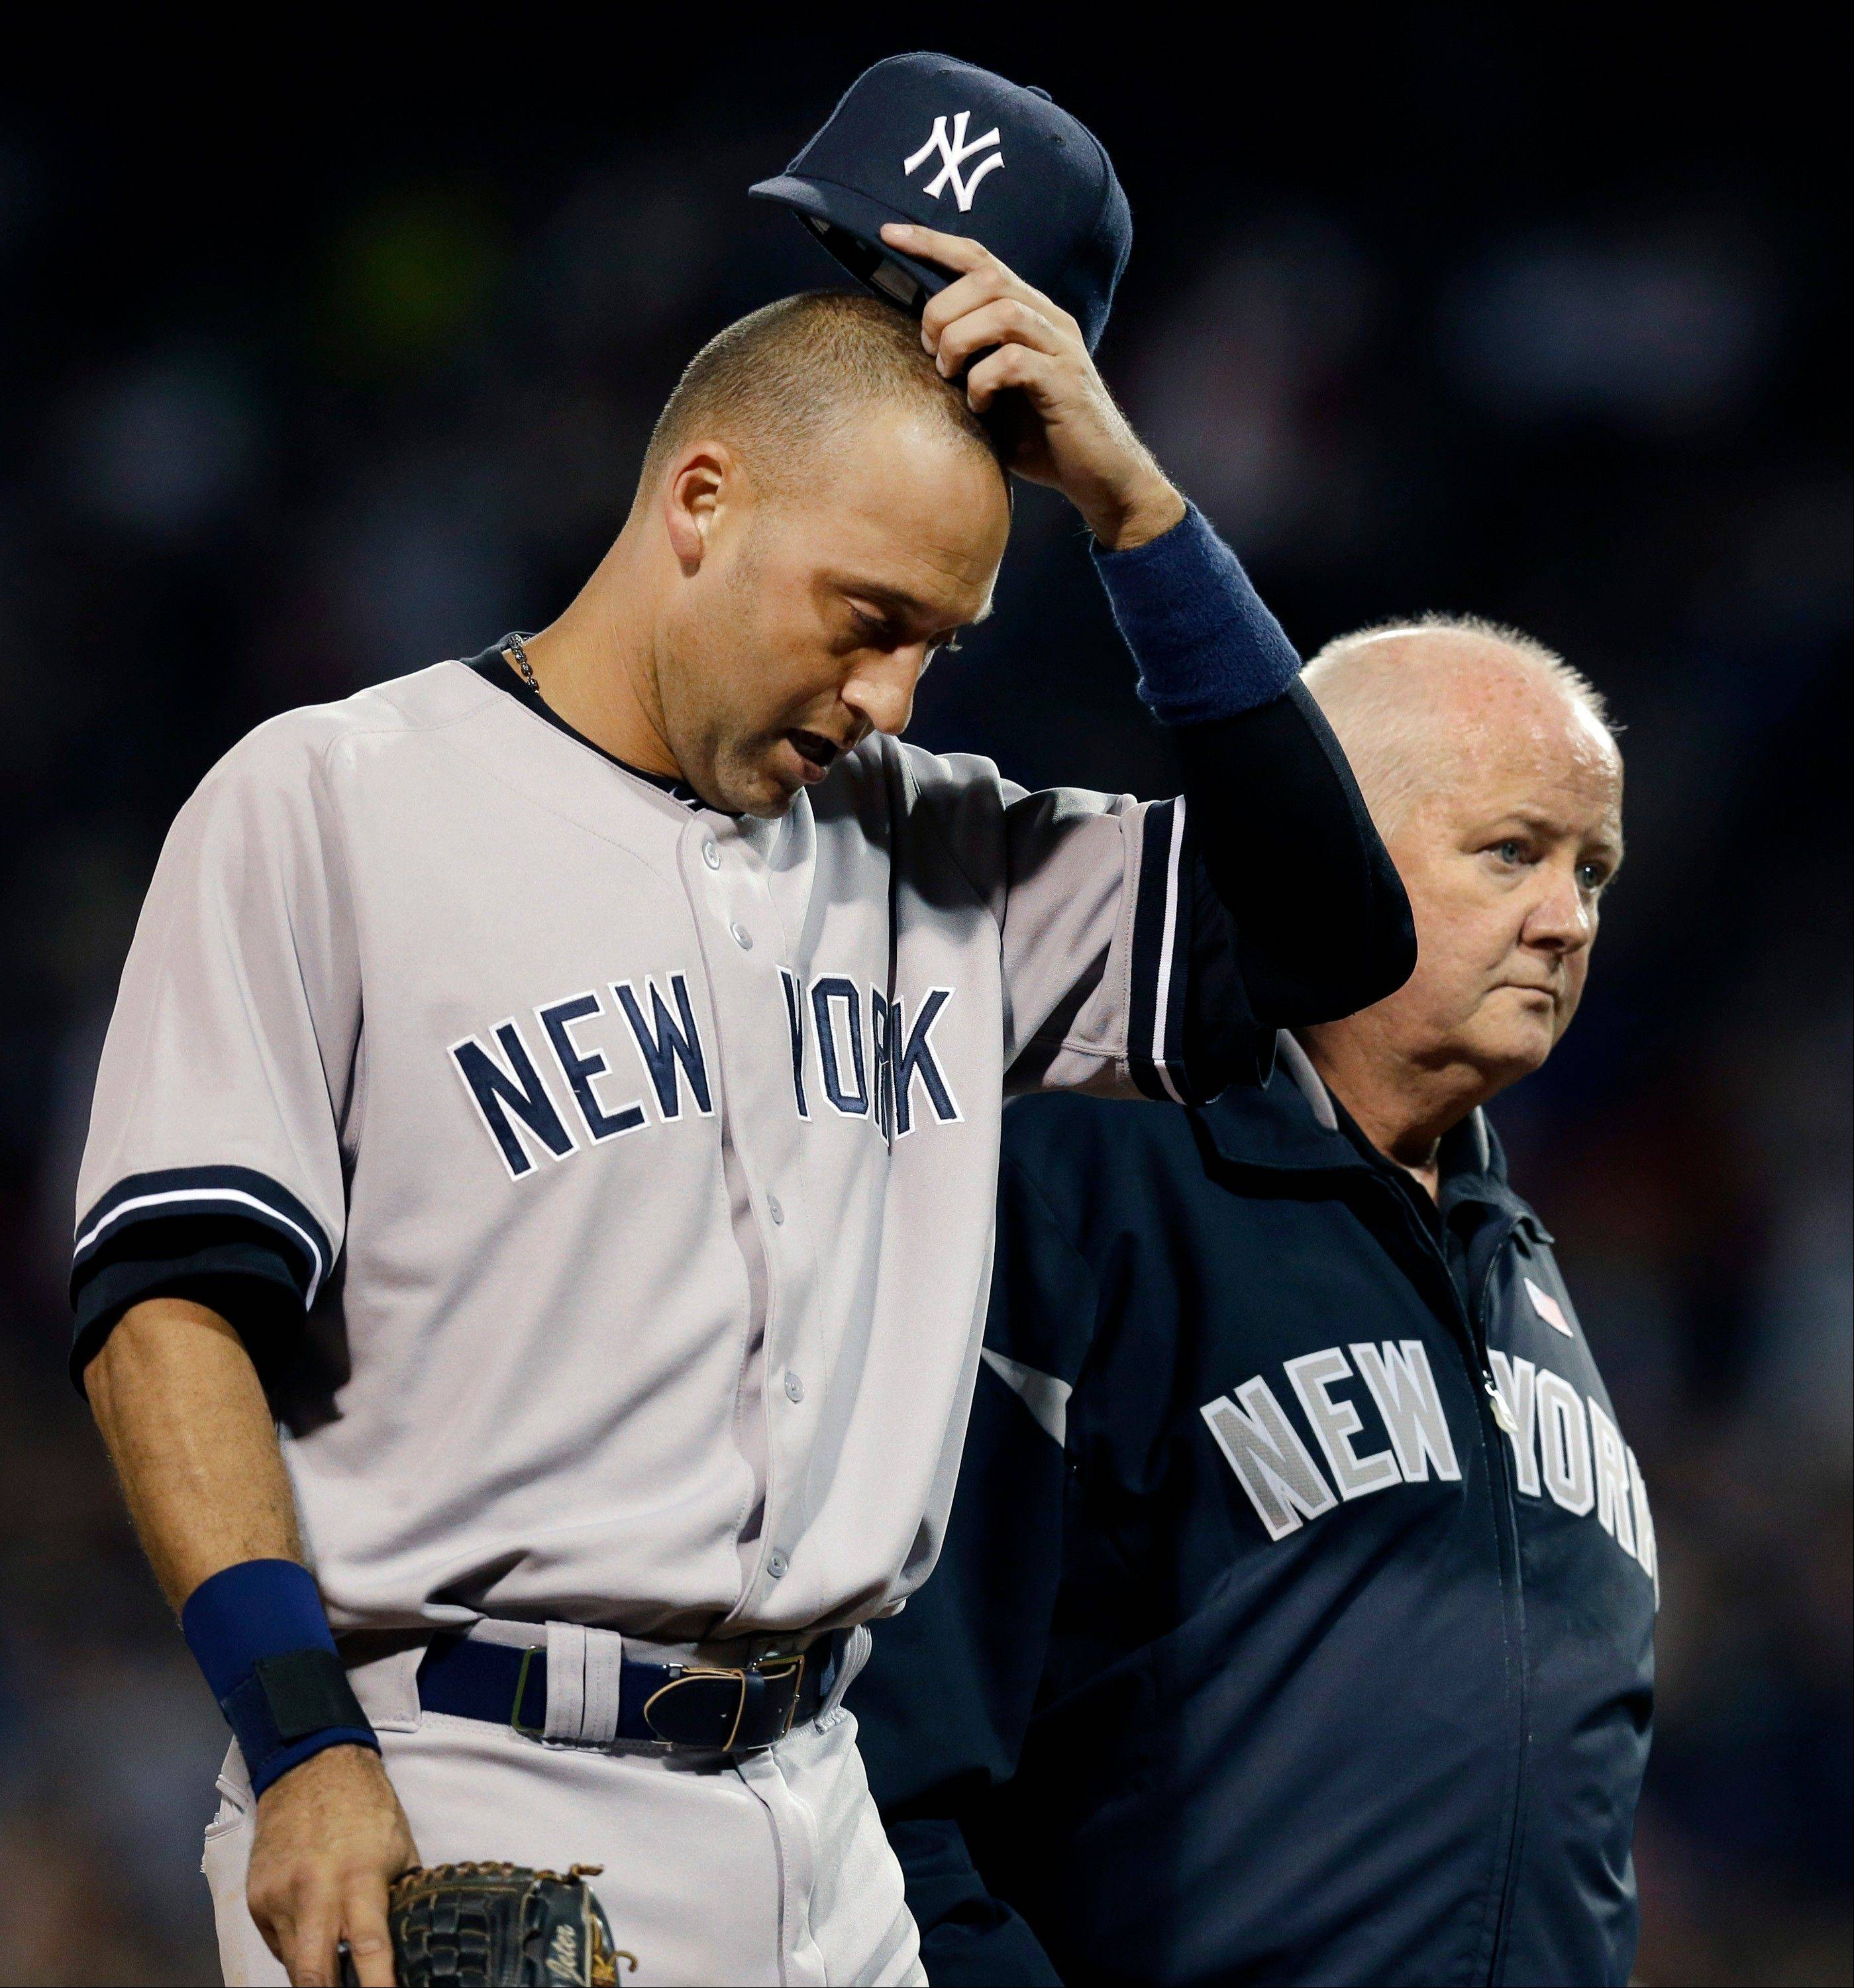 The Yankees' Derek Jeter leaves the game with team trainer Steve Donohue after he was injured trying to beat out a double-play grounder during the eighth inning Wednesday in Boston.